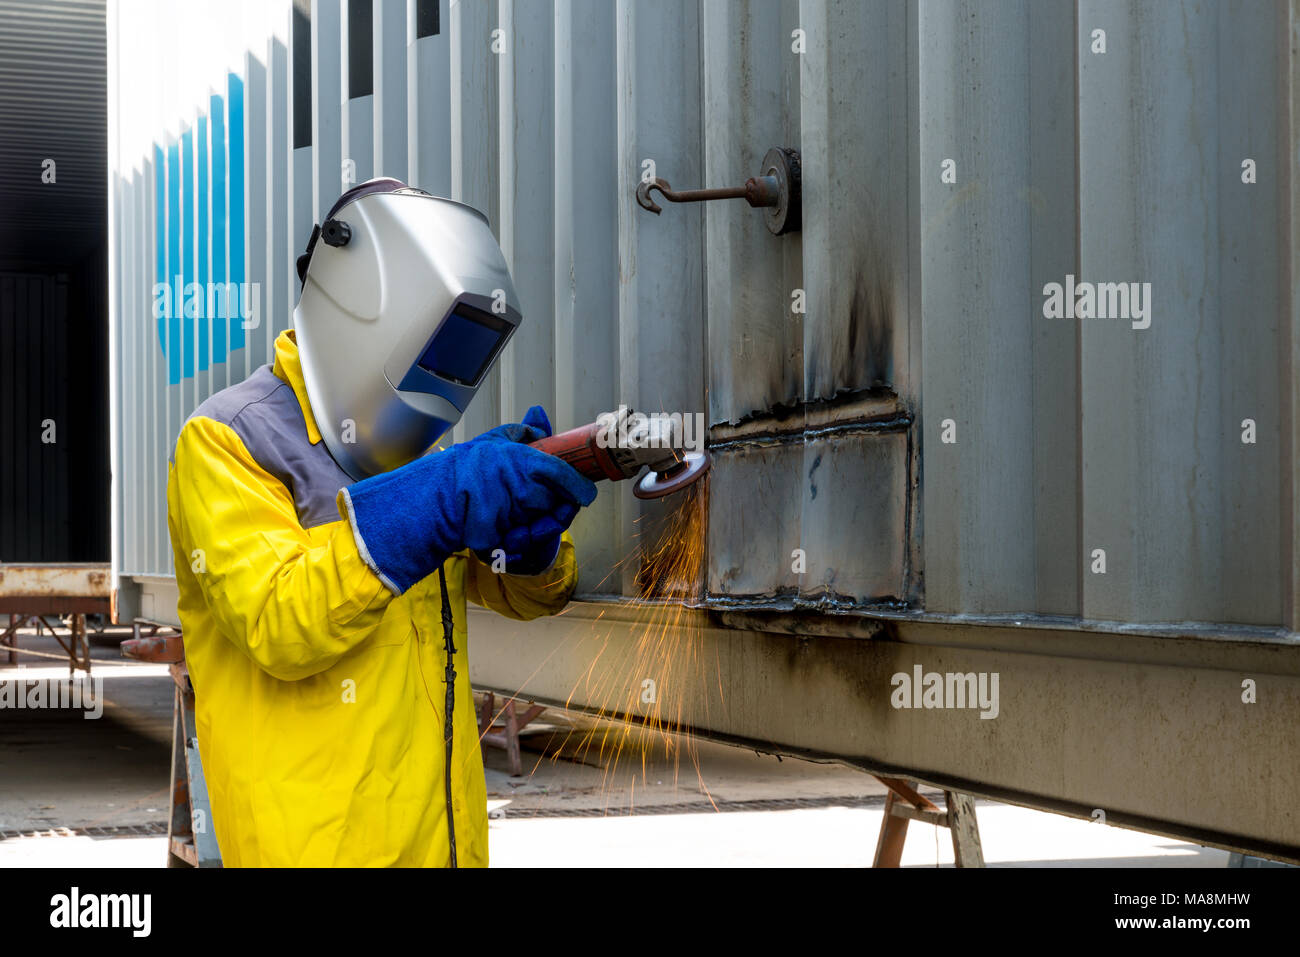 Industry worker with grinding metal to repair container structures manufacture workshop. Worker grinding in factory industry. - Stock Image